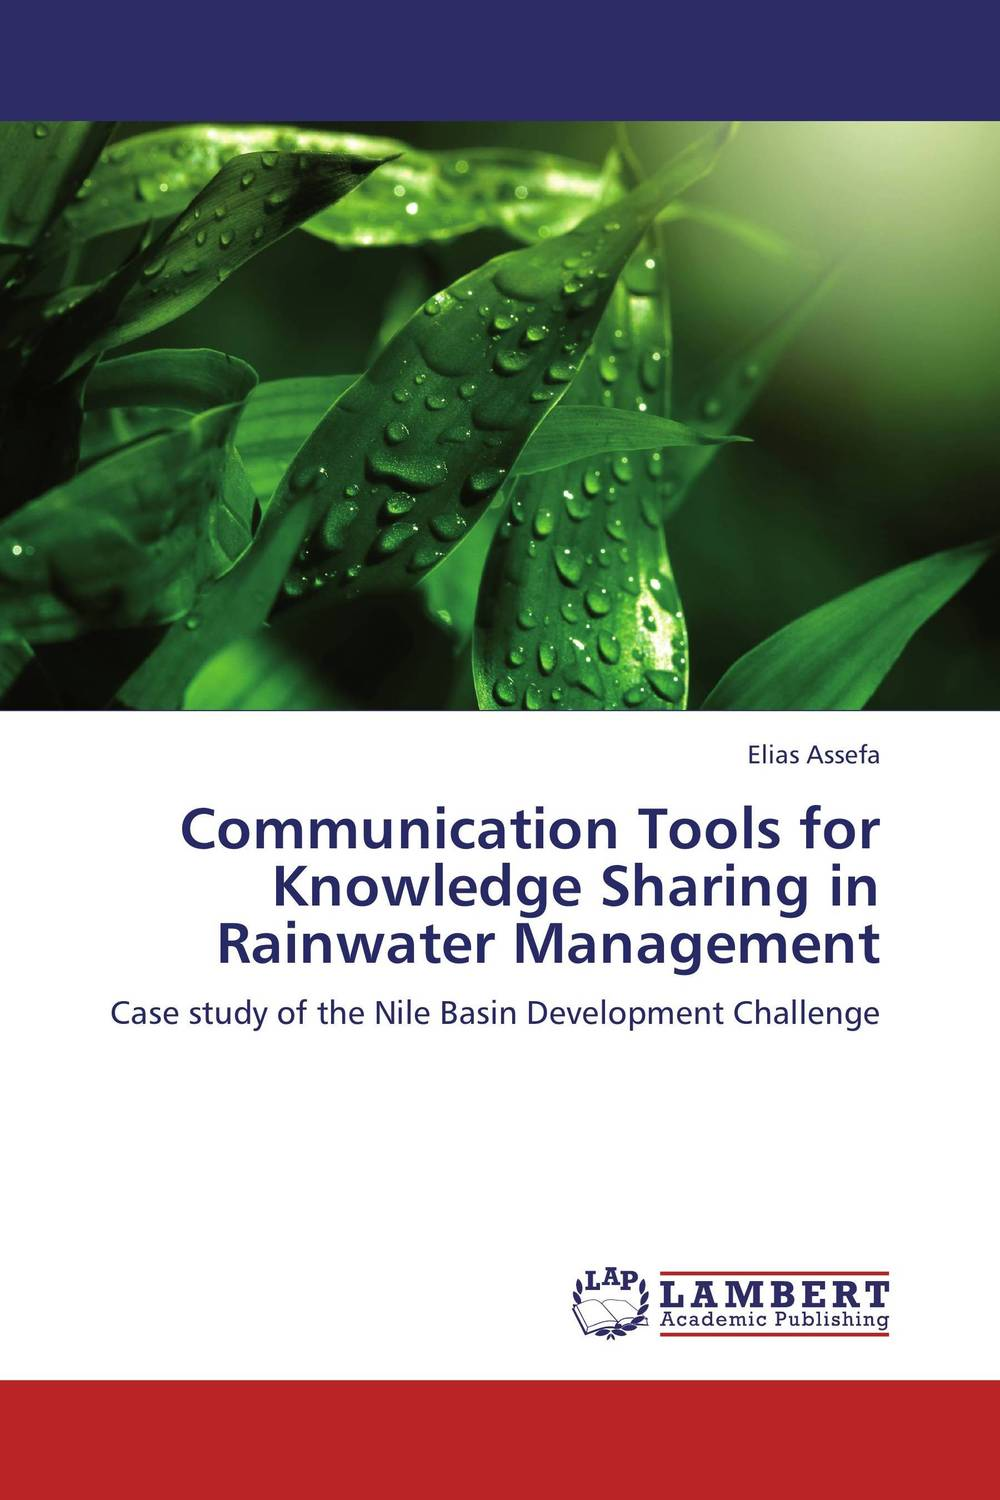 Communication Tools for Knowledge Sharing in Rainwater Management